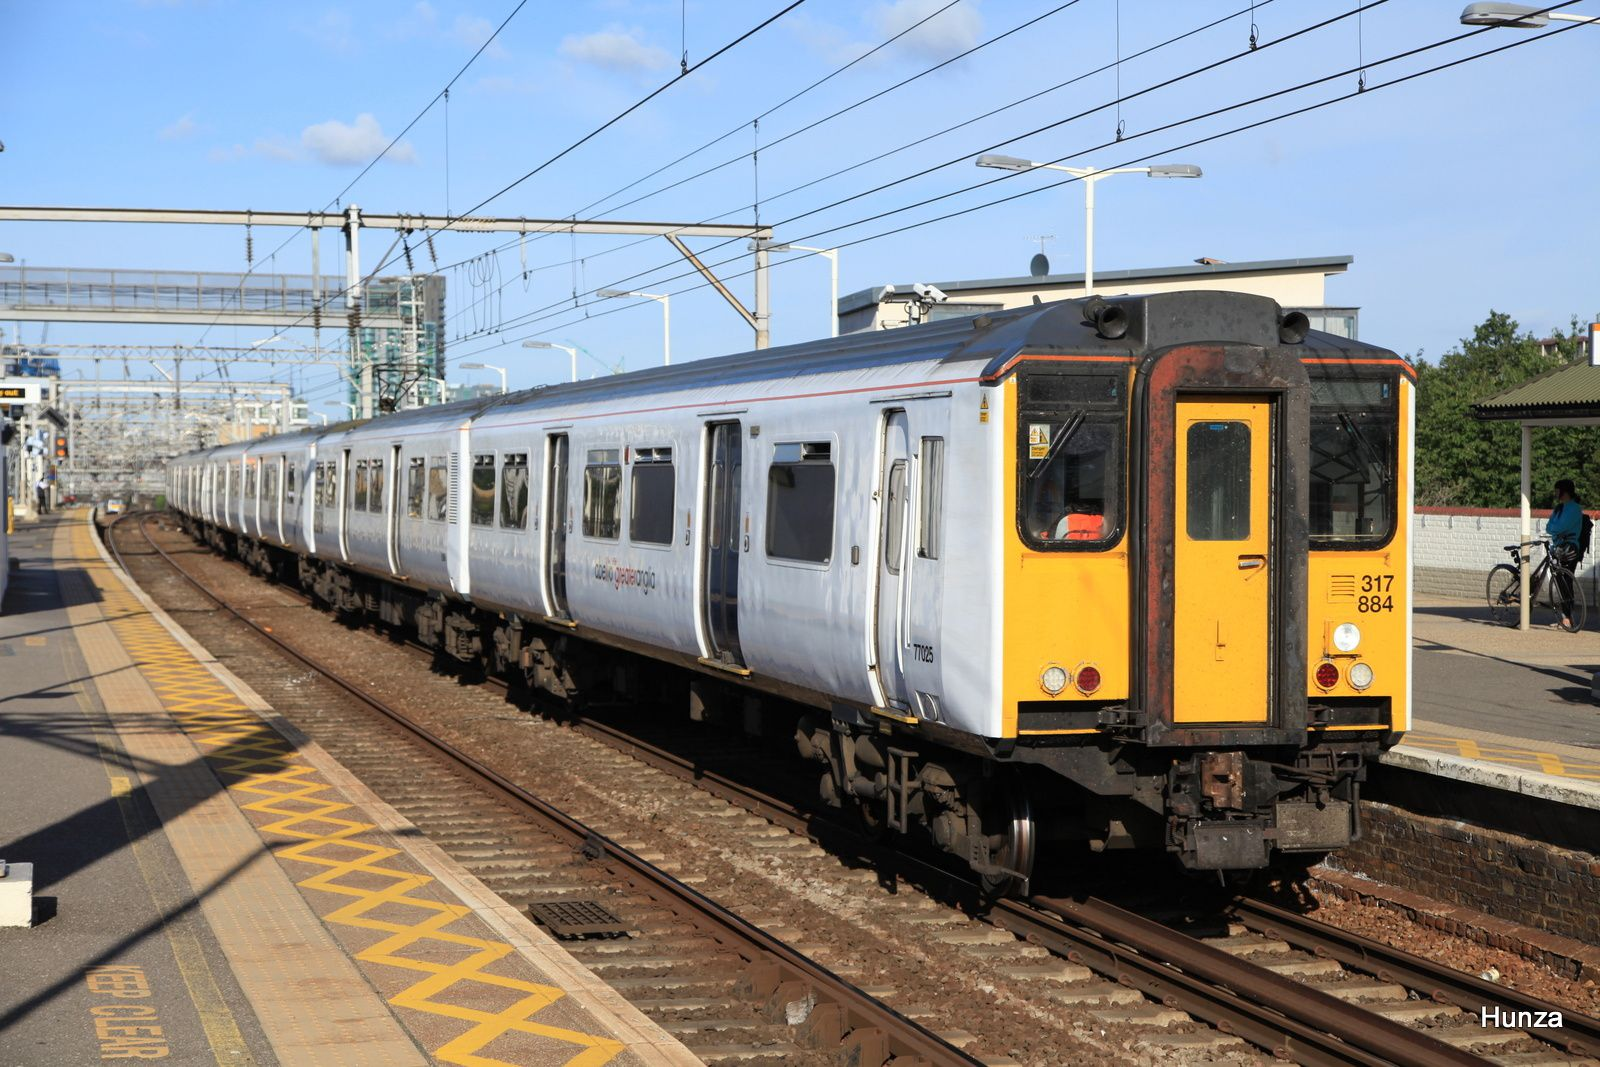 Bethnal Green station : class 317 n°317 884 de la compagnie Abellio Greater Anglia (8 août 2016)